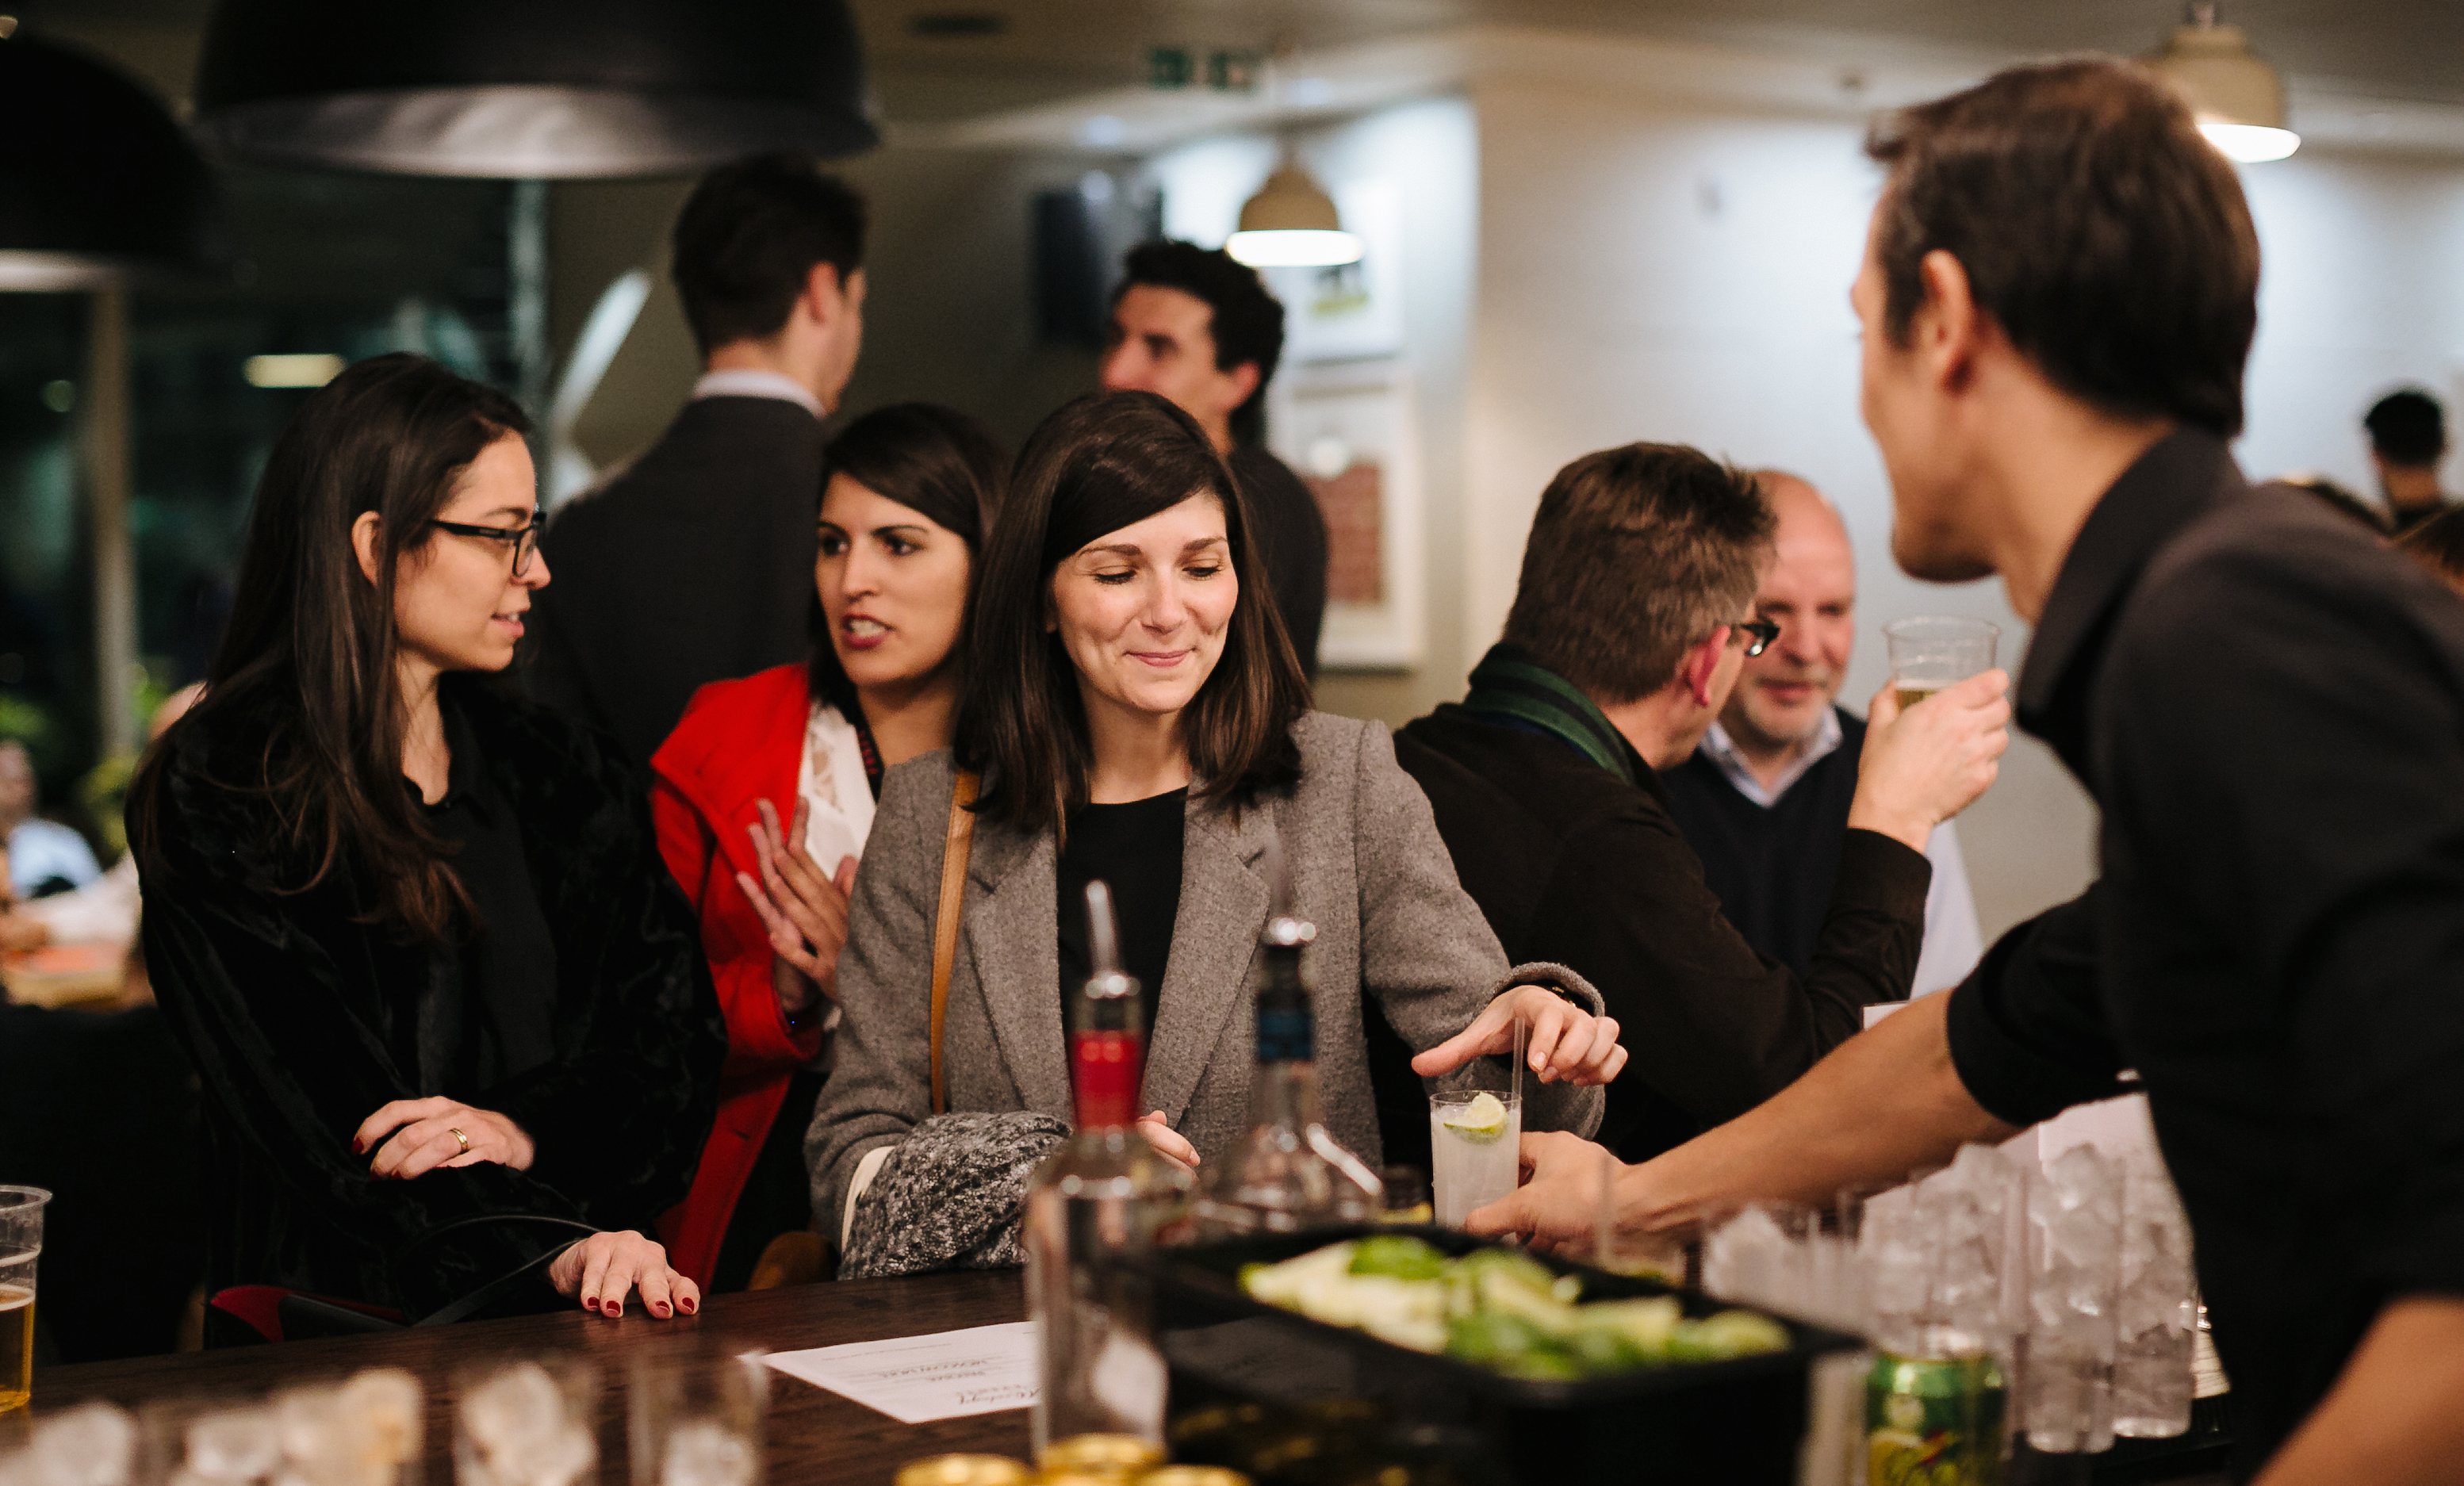 Five tips for throwing an awesome office party - Ideas